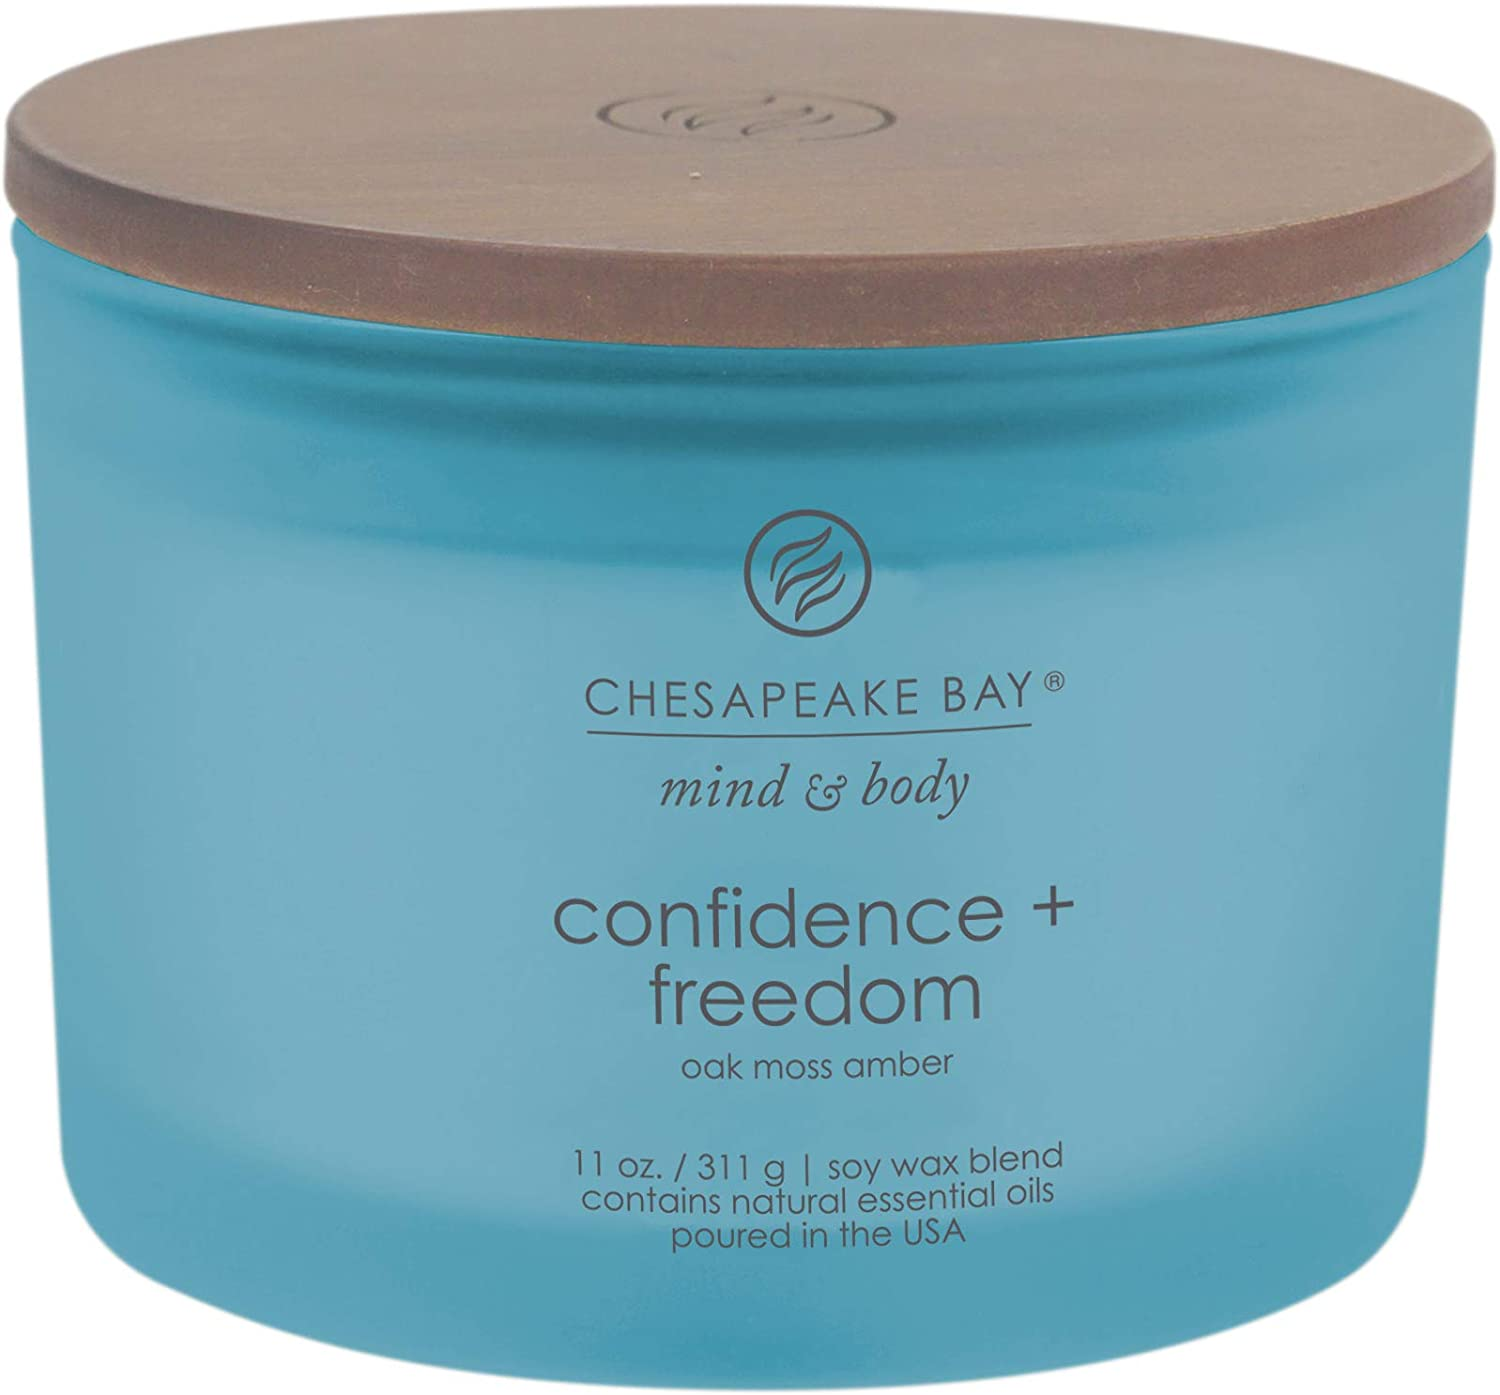 Chesapeake Bay Candle Scented Candle, Confidence + Freedom (Oak Moss Amber), 11 oz